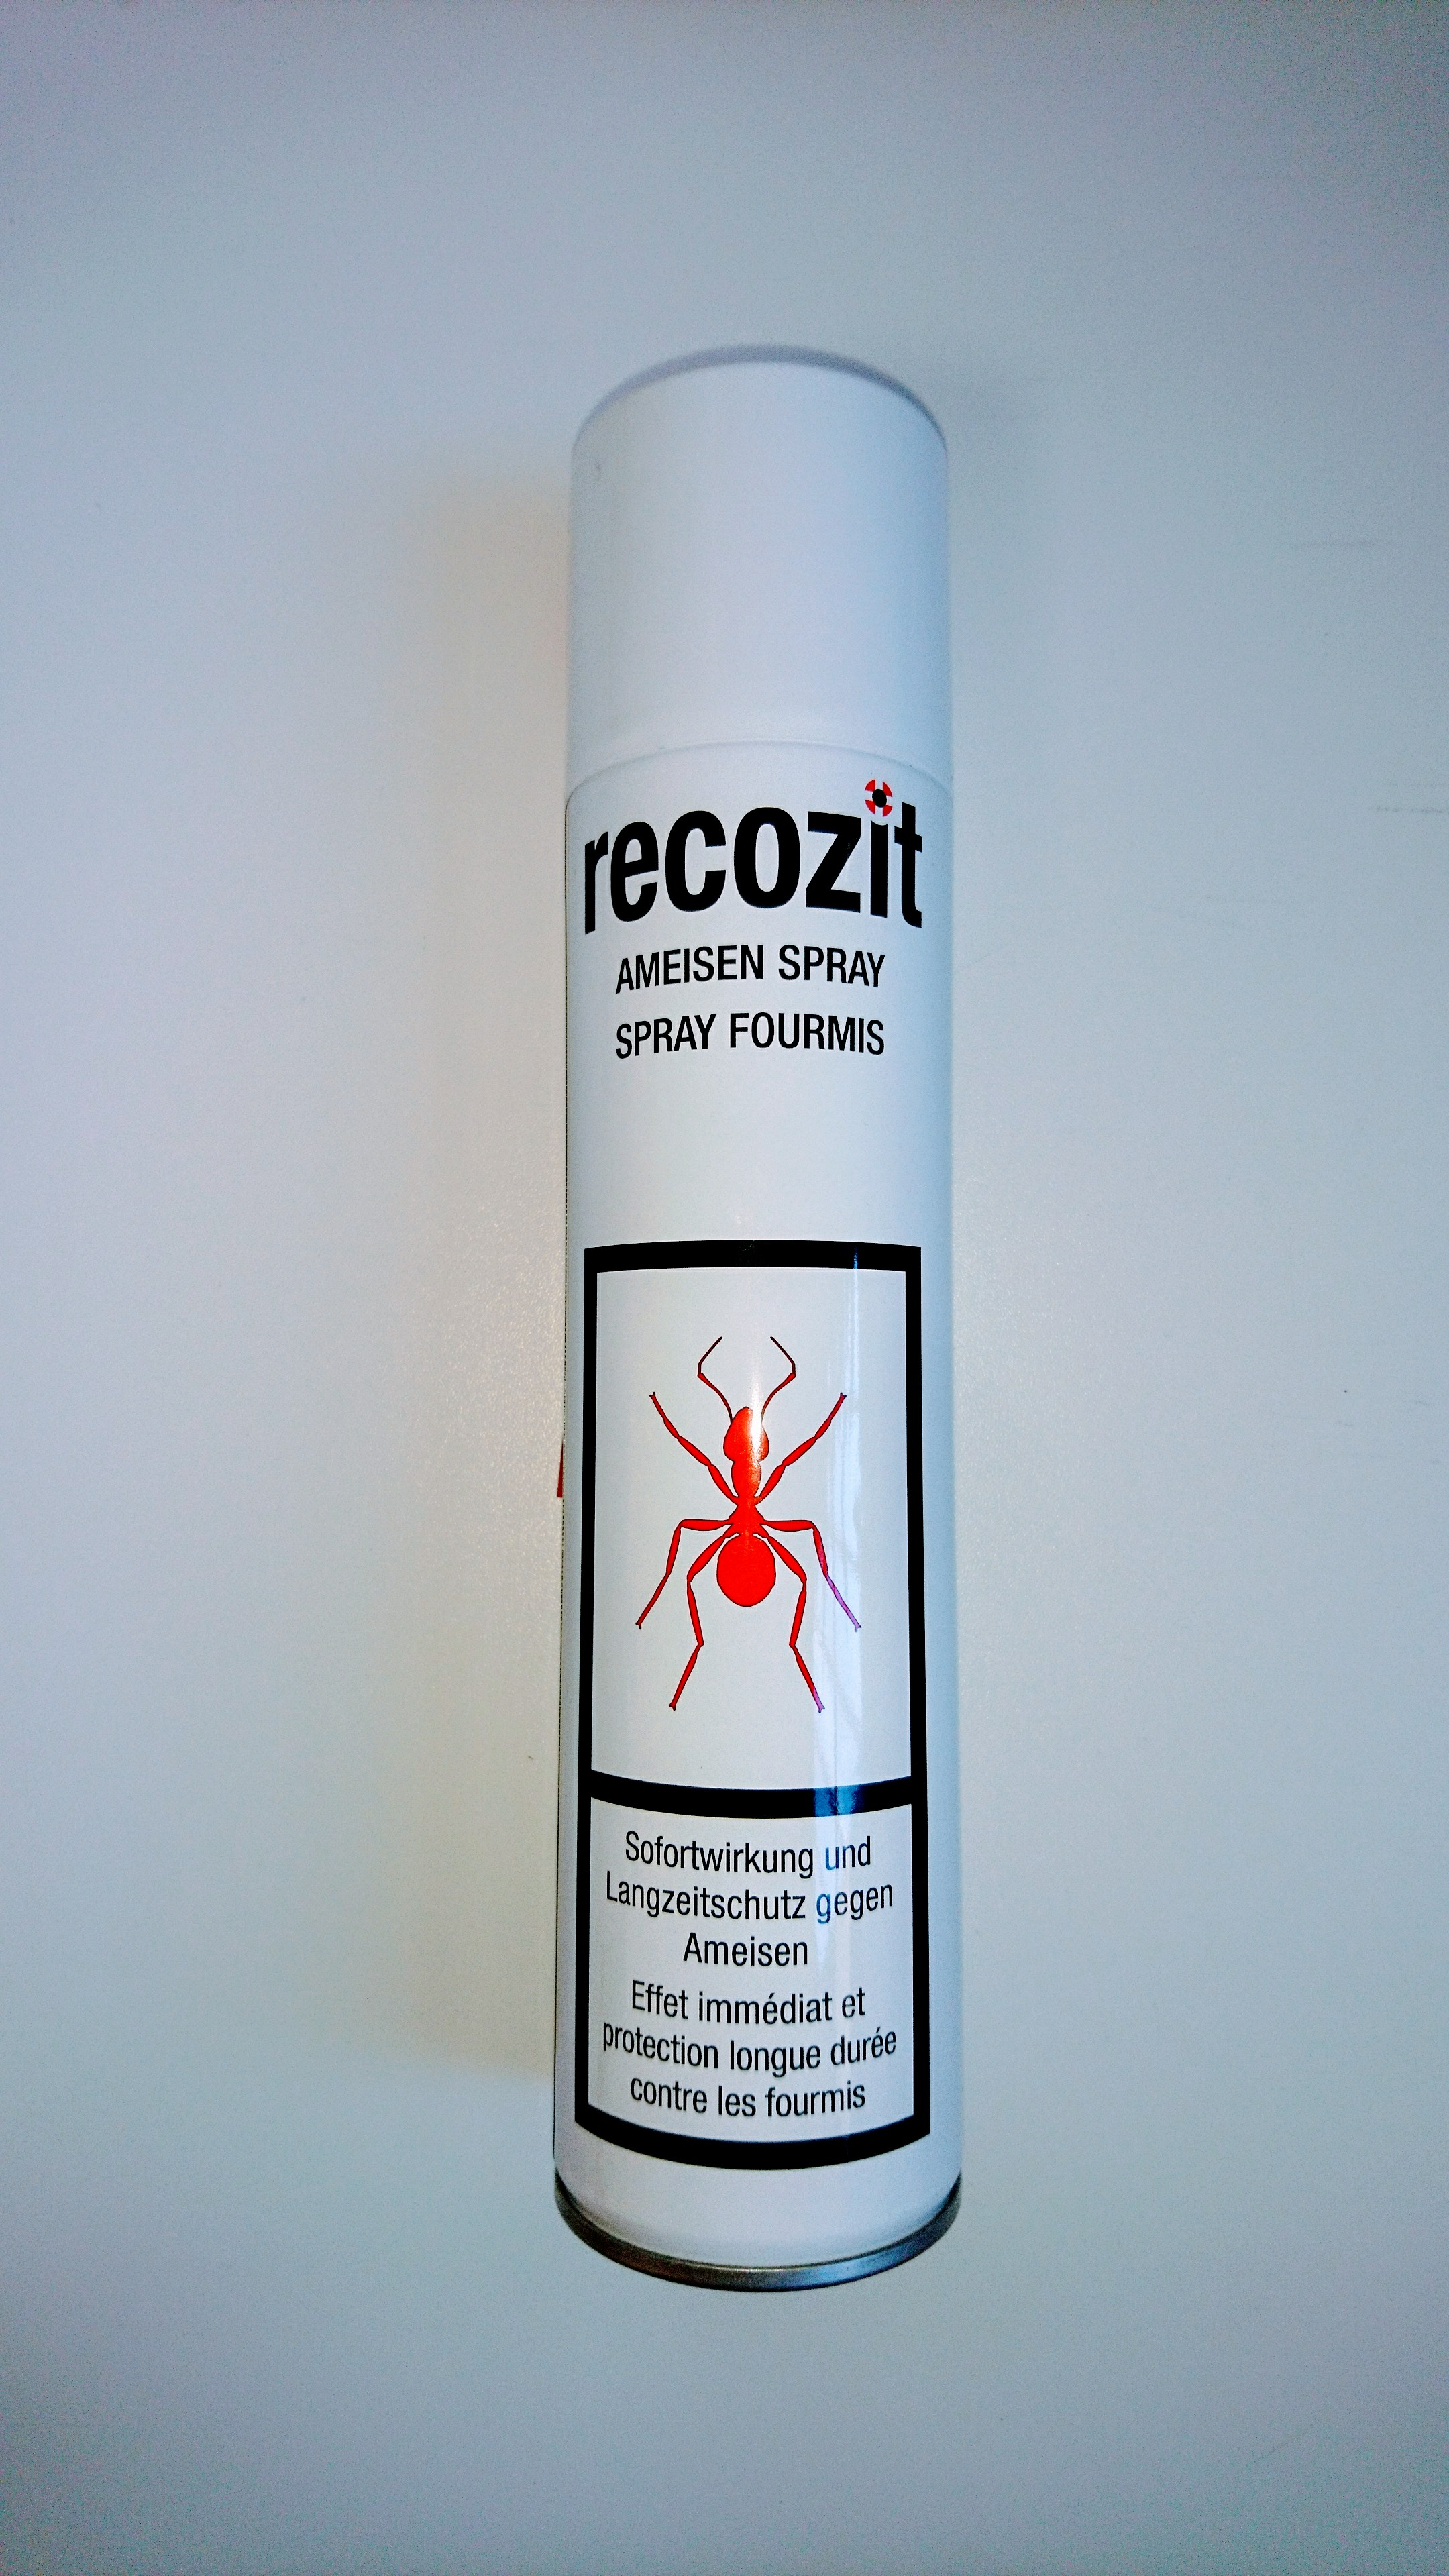 Recozit anti fourmis spray 400ml 261 chf for Anti fourmis dans la maison